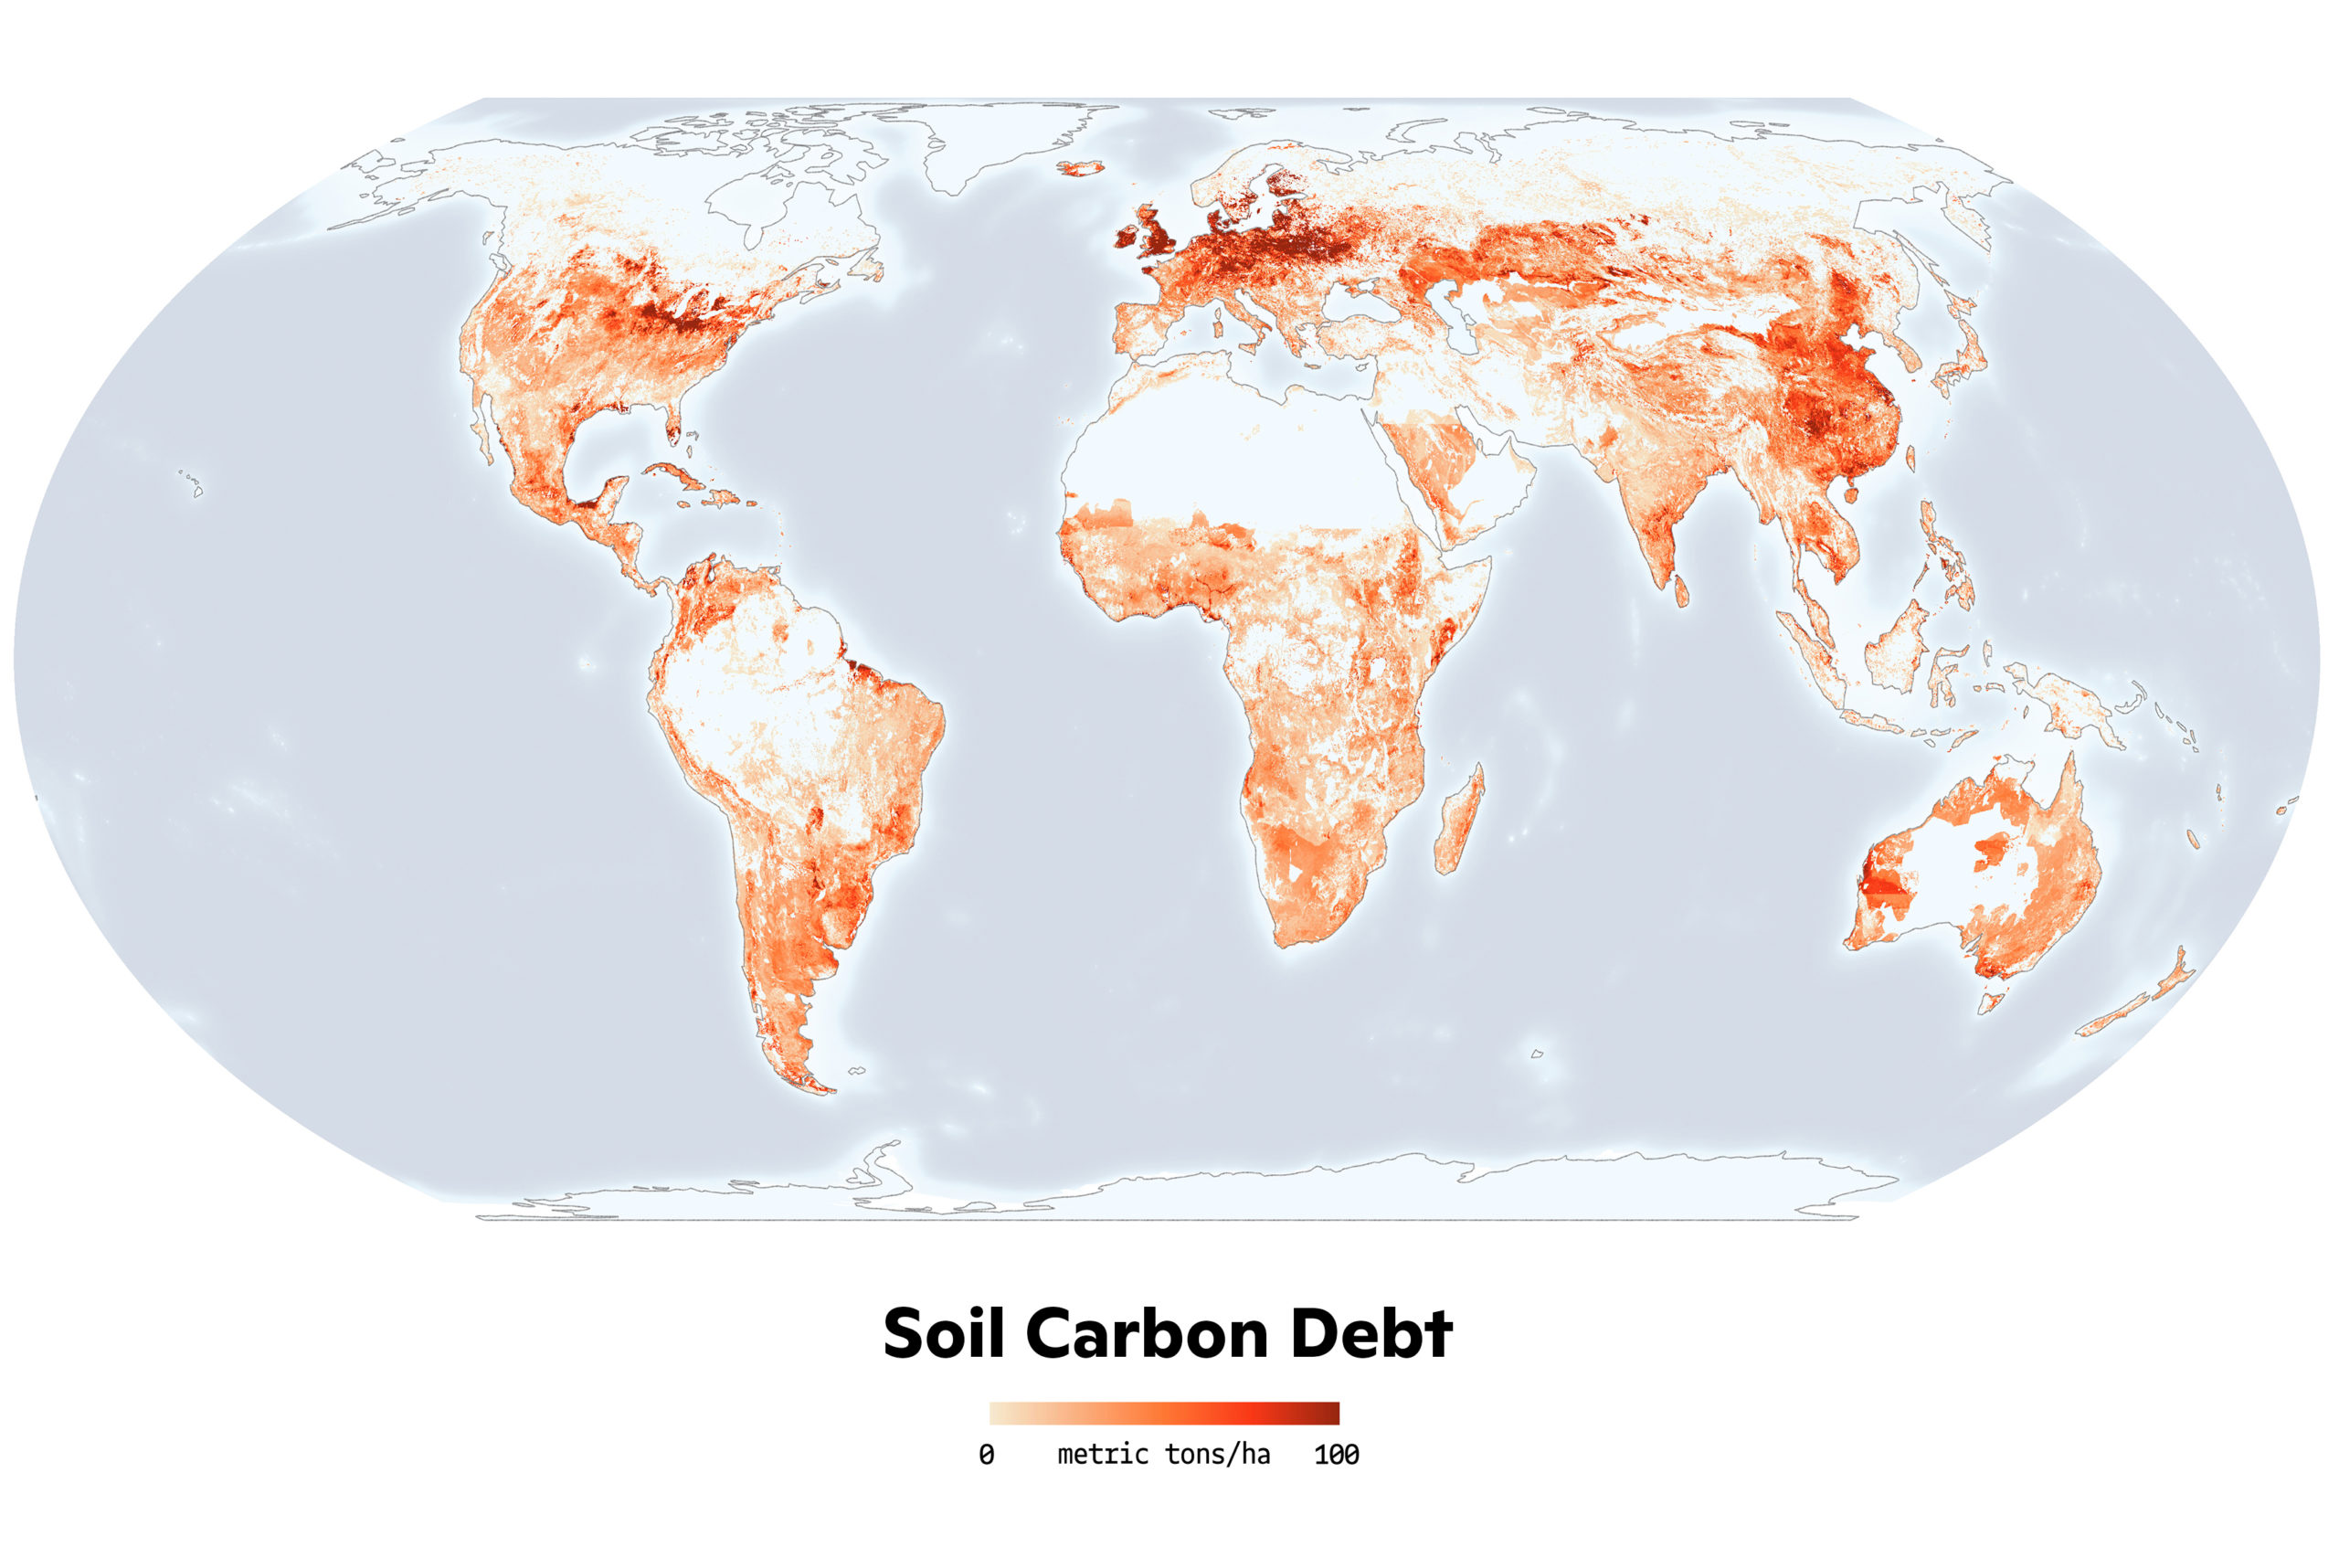 soil carbon debt map